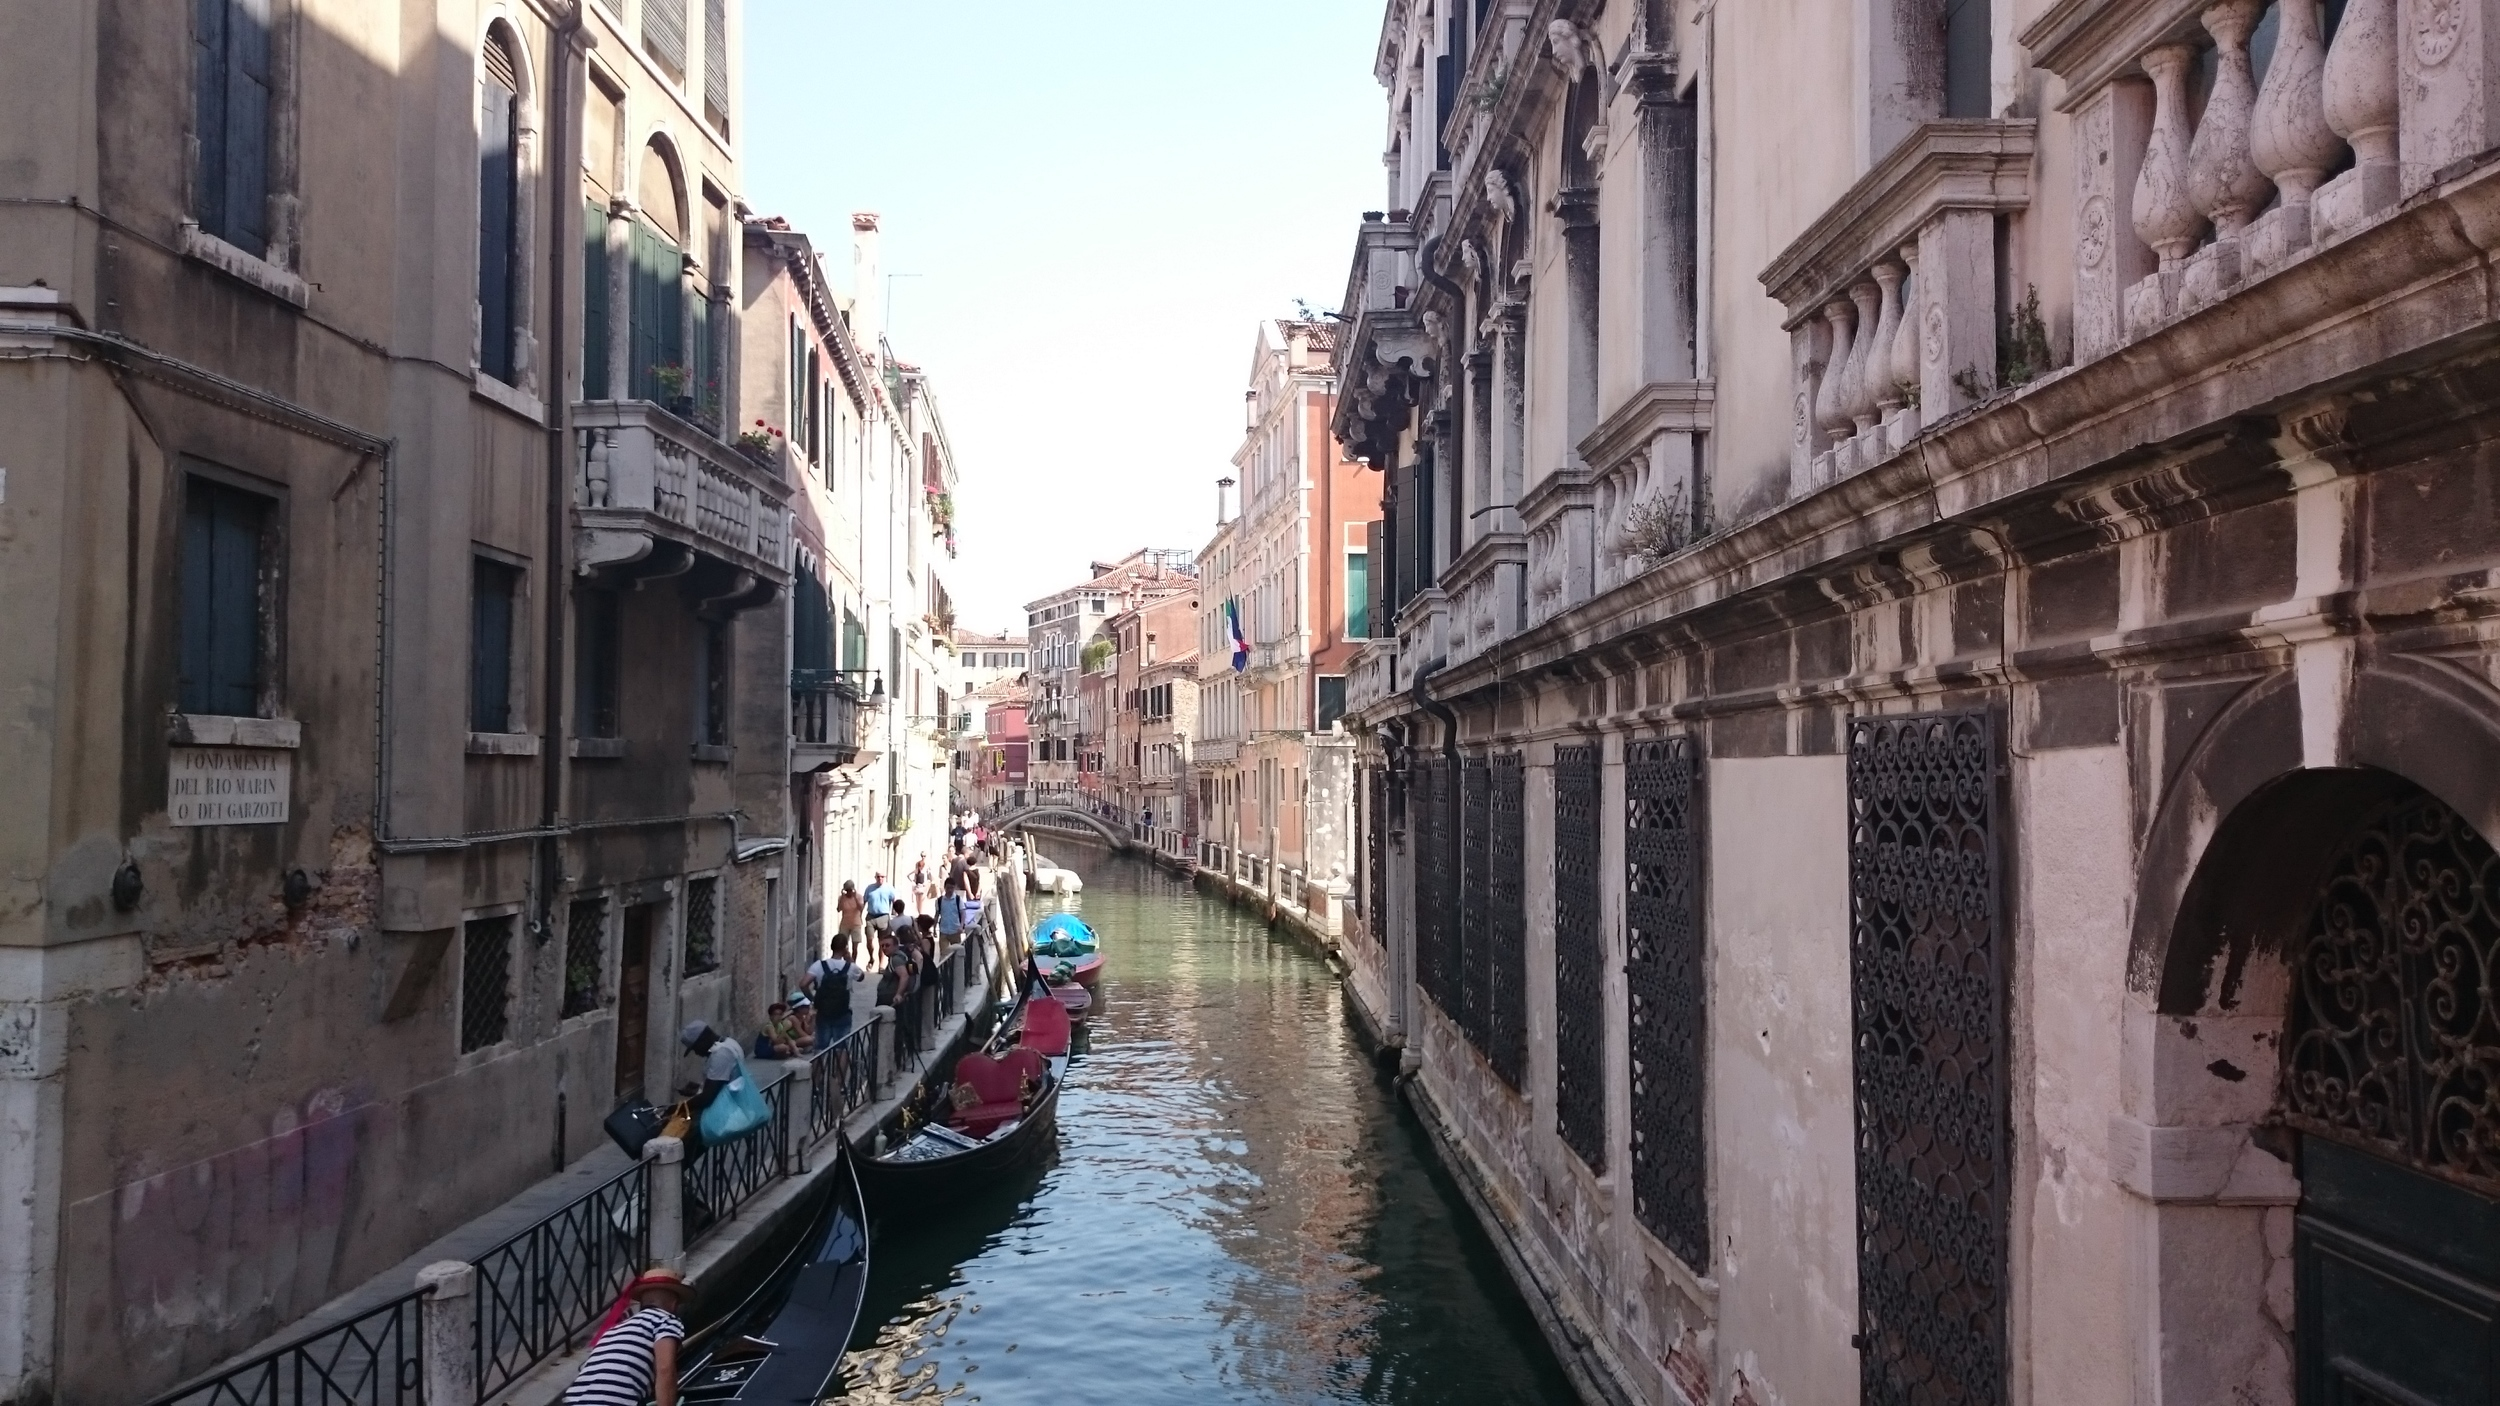 Typical view of venice canals